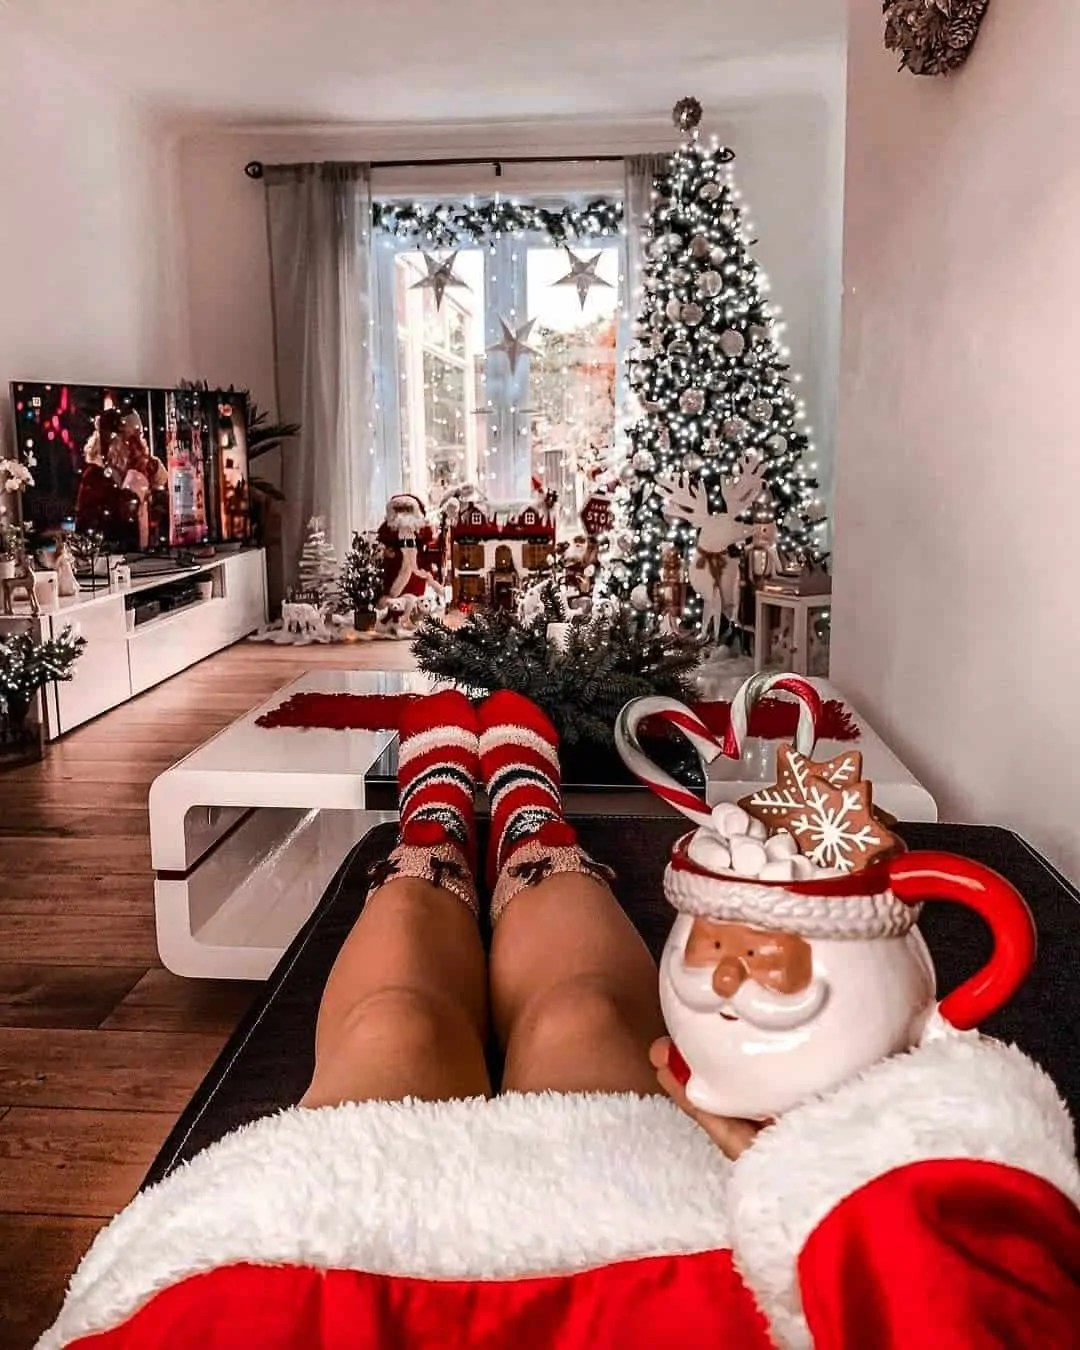 30 Christmas Aesthetic Images you must see: WARNING you will get Christmas mood INSTANTLY! 191